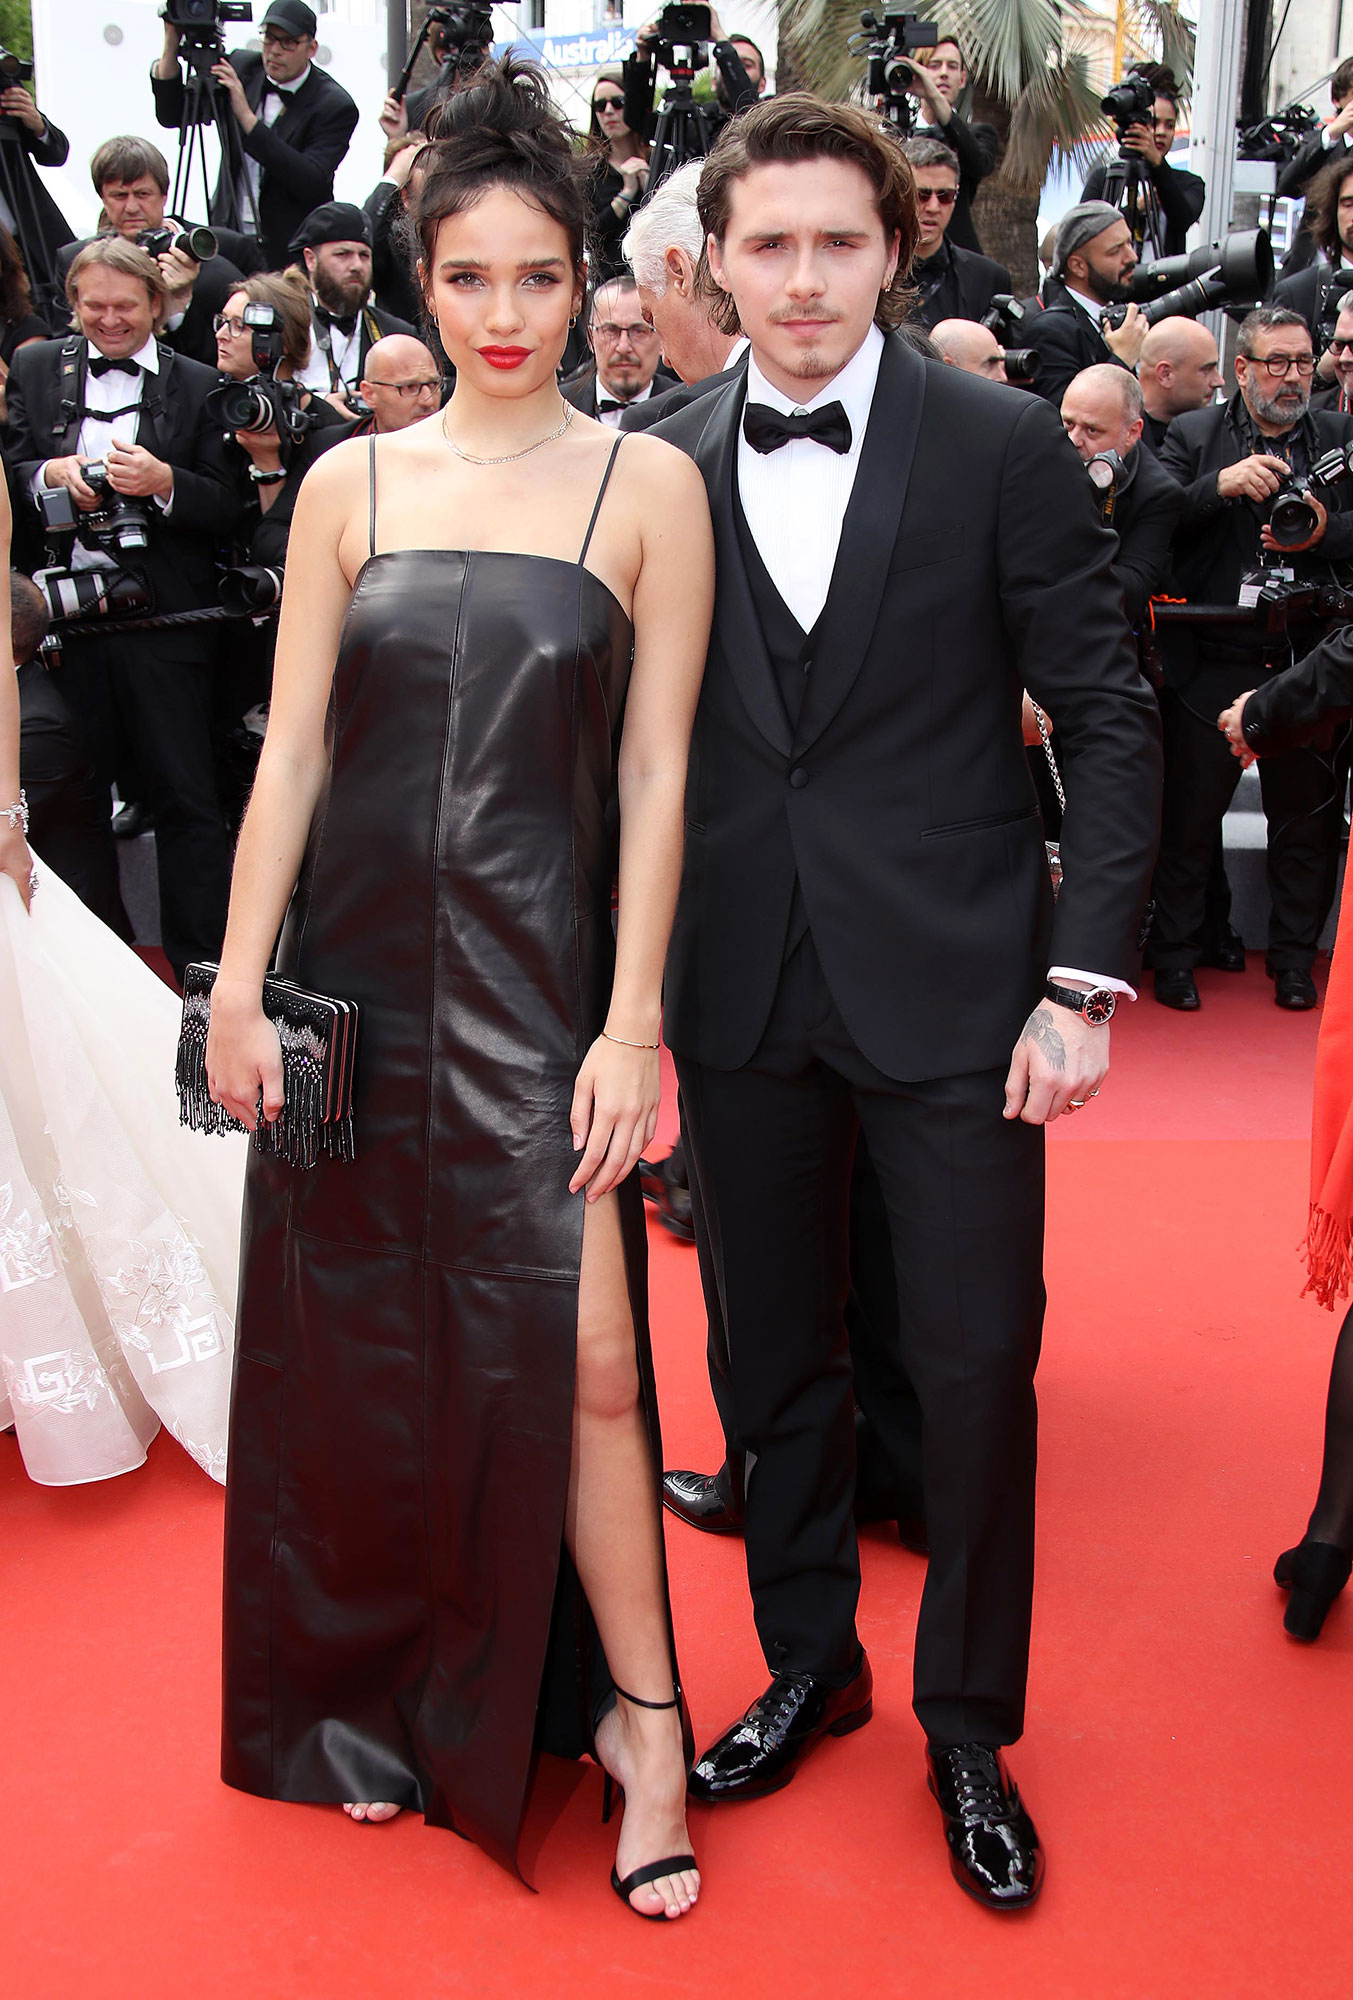 Brooklyn Beckham Cannes Film Festival 2019 Most Stylish Guys Red Carpet - David and Victoria's oldest son complemented his date, Hana Cross, in a black three-piece suit at the Once Upon a Time in Hollywood premiere on Tuesday, May 21.